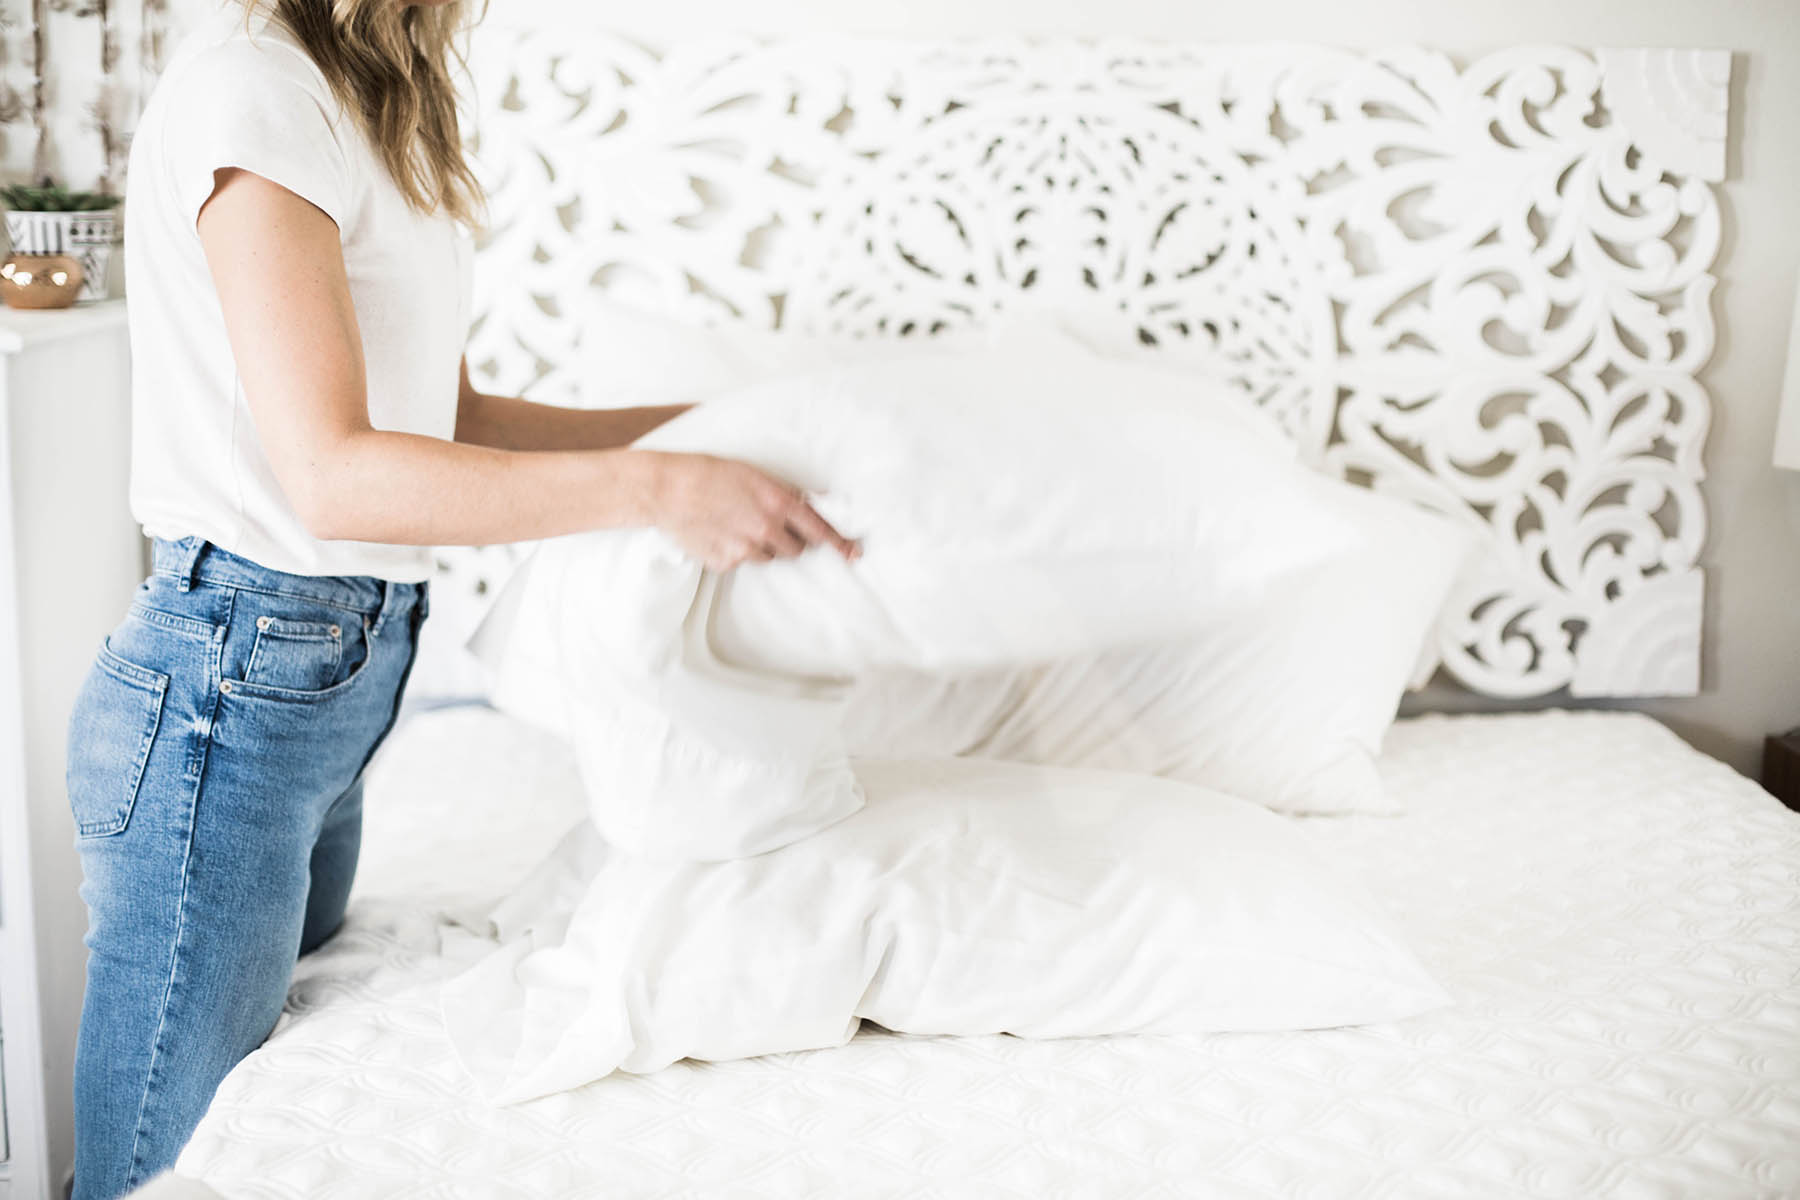 Amanda Holstein fluffing pillow, bedding basics